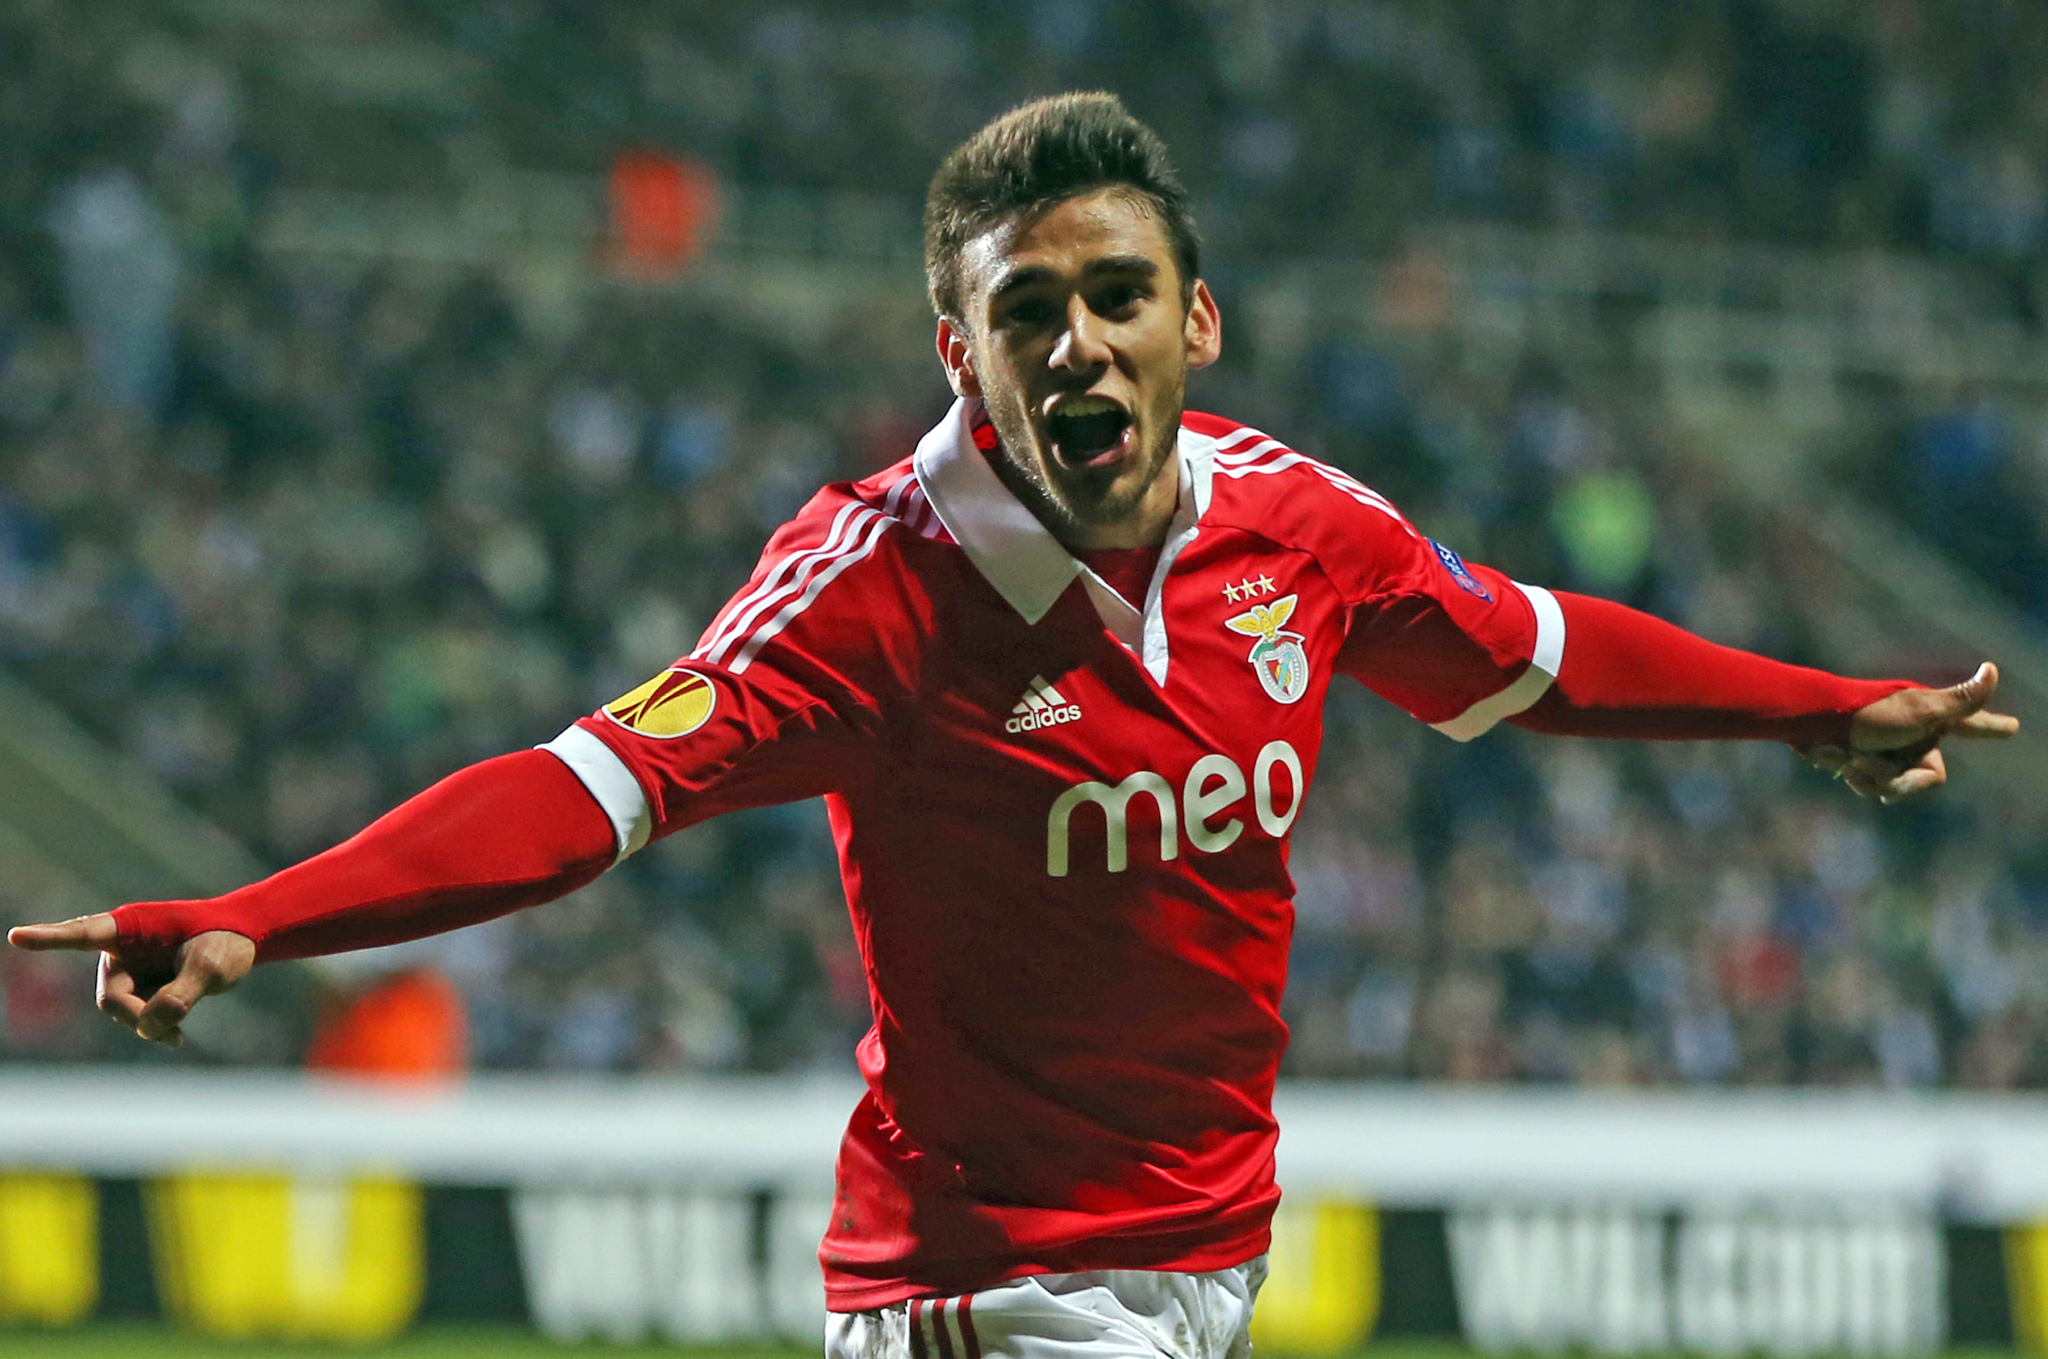 Eduardo-Salvio-getty